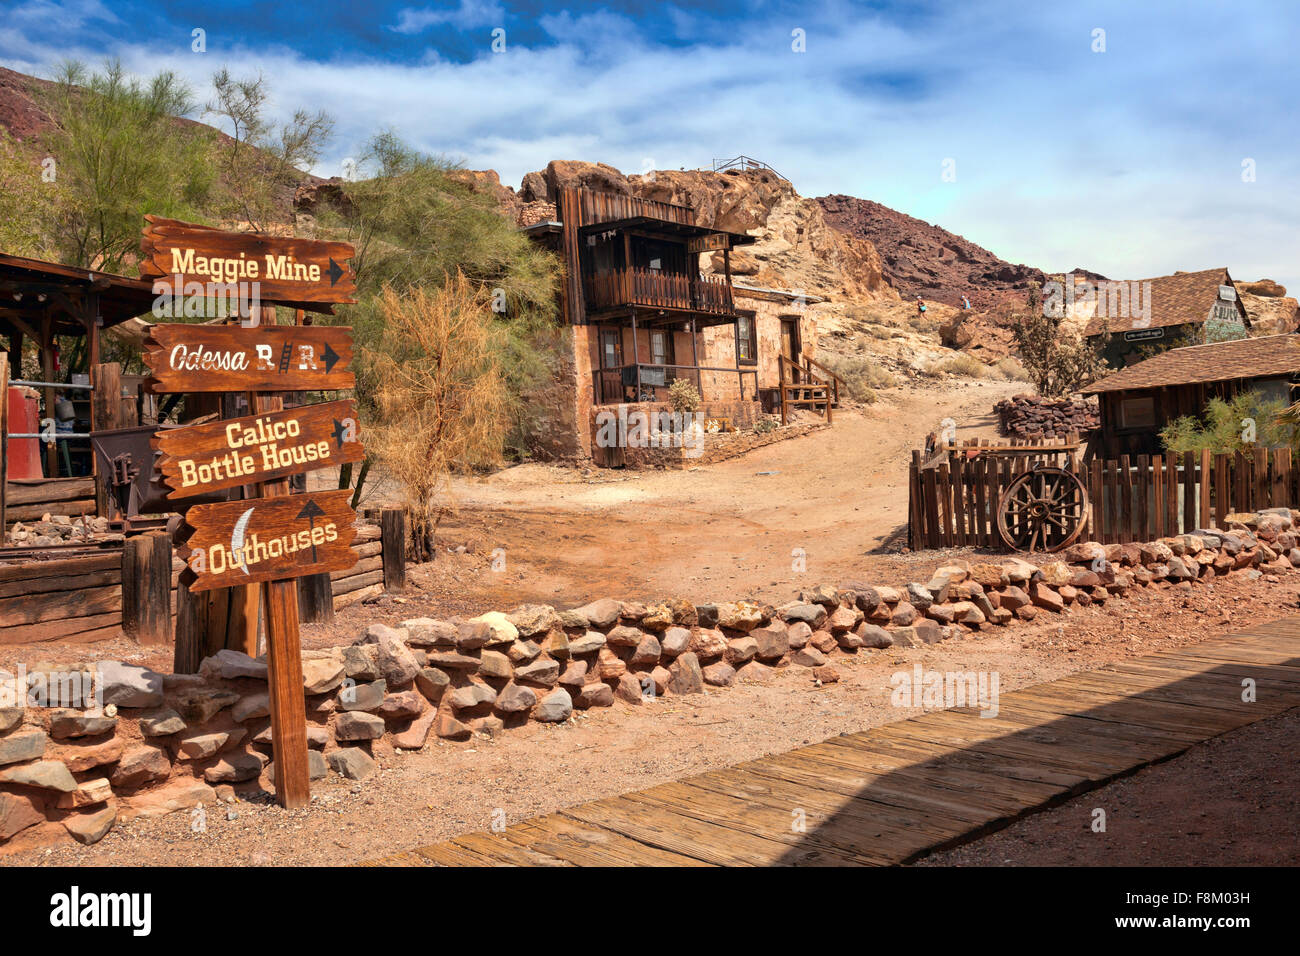 Ghost Town In The Nevada Desert Near Las Vegas Abandoned Mining – Tourist Attractions Near Las Vegas